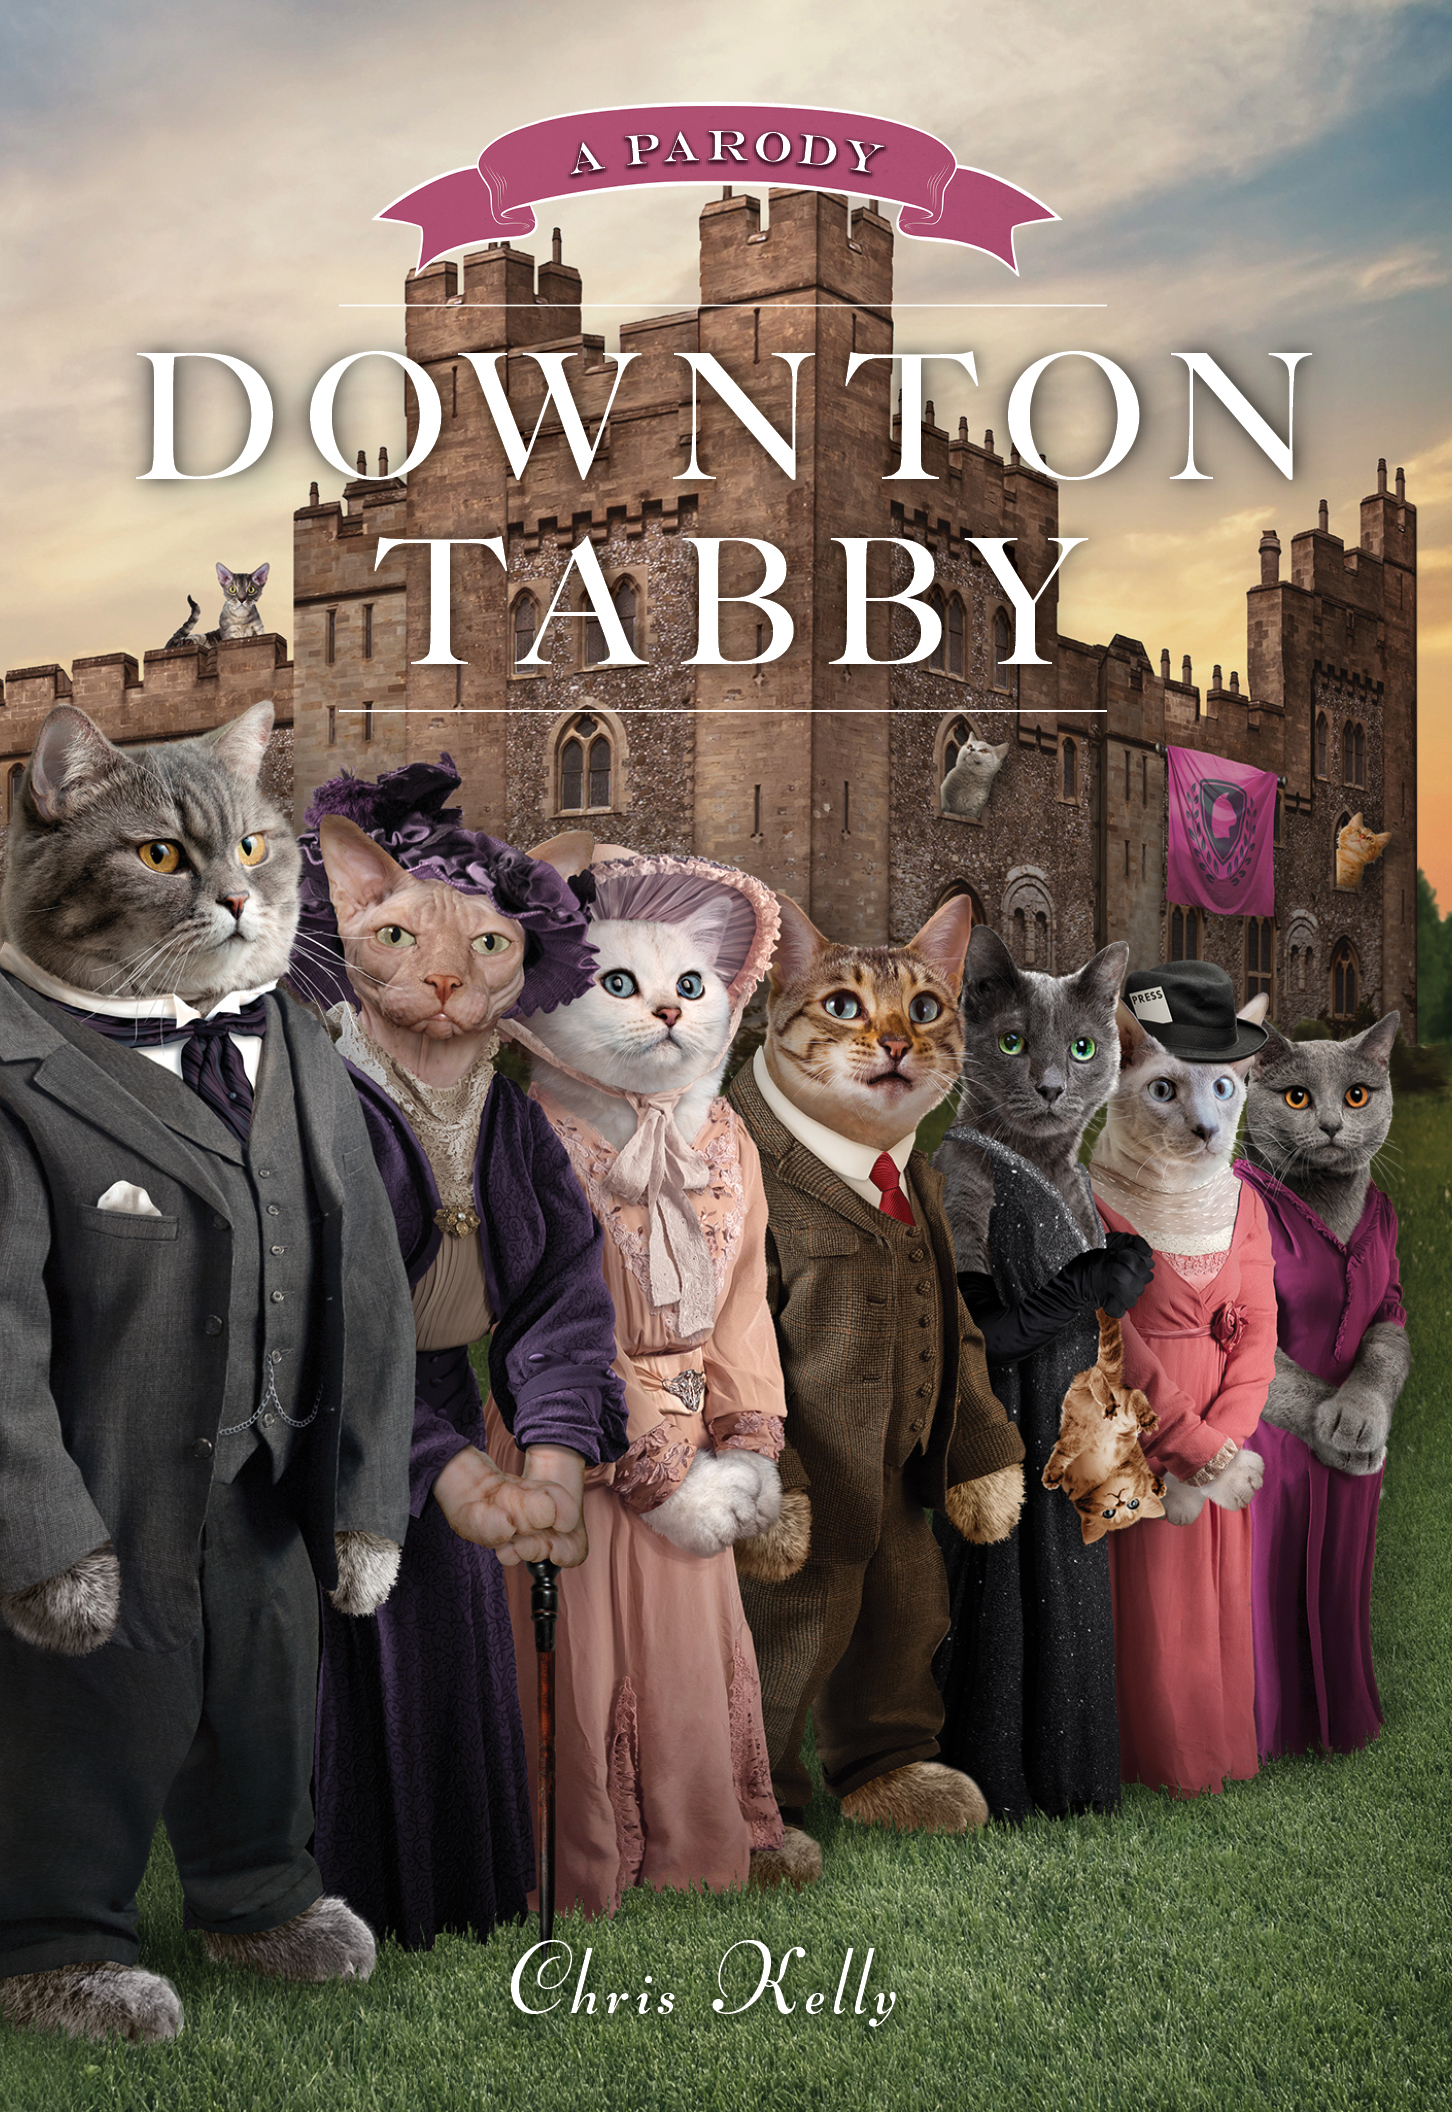 Downton-tabby-9781476765938_hr